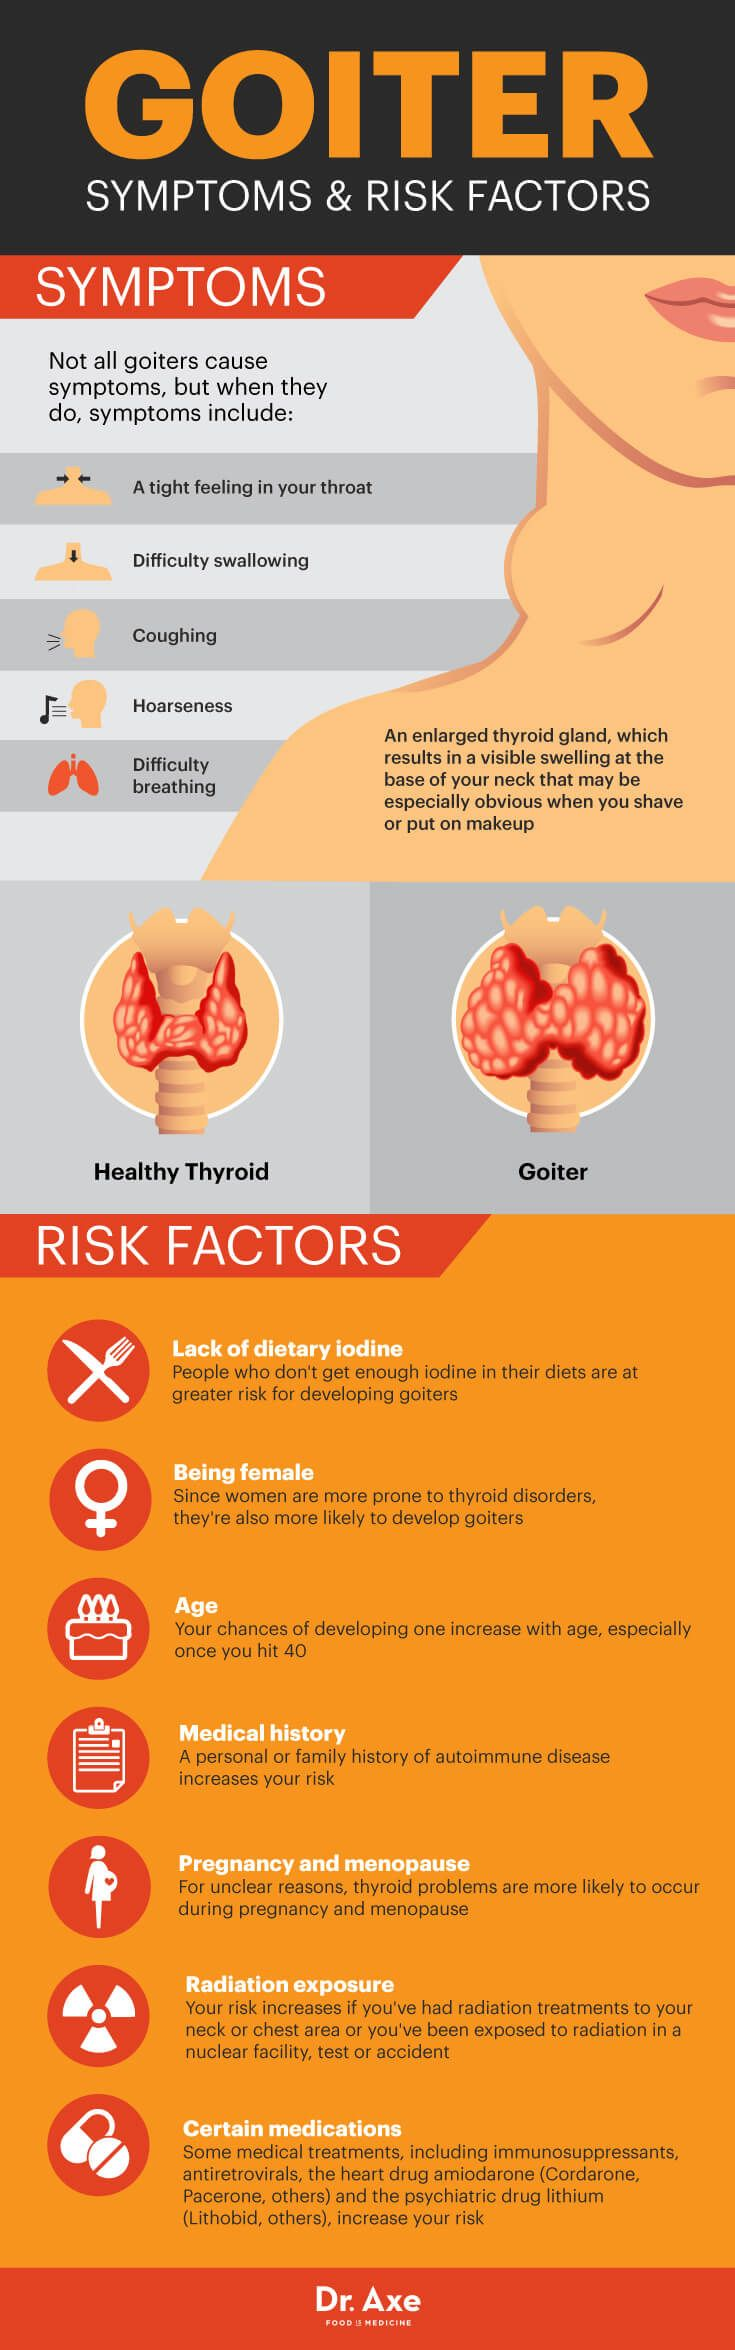 Goiter symptoms and risk factors - Dr. Axe  http://www.draxe.com #health #holistic #natural